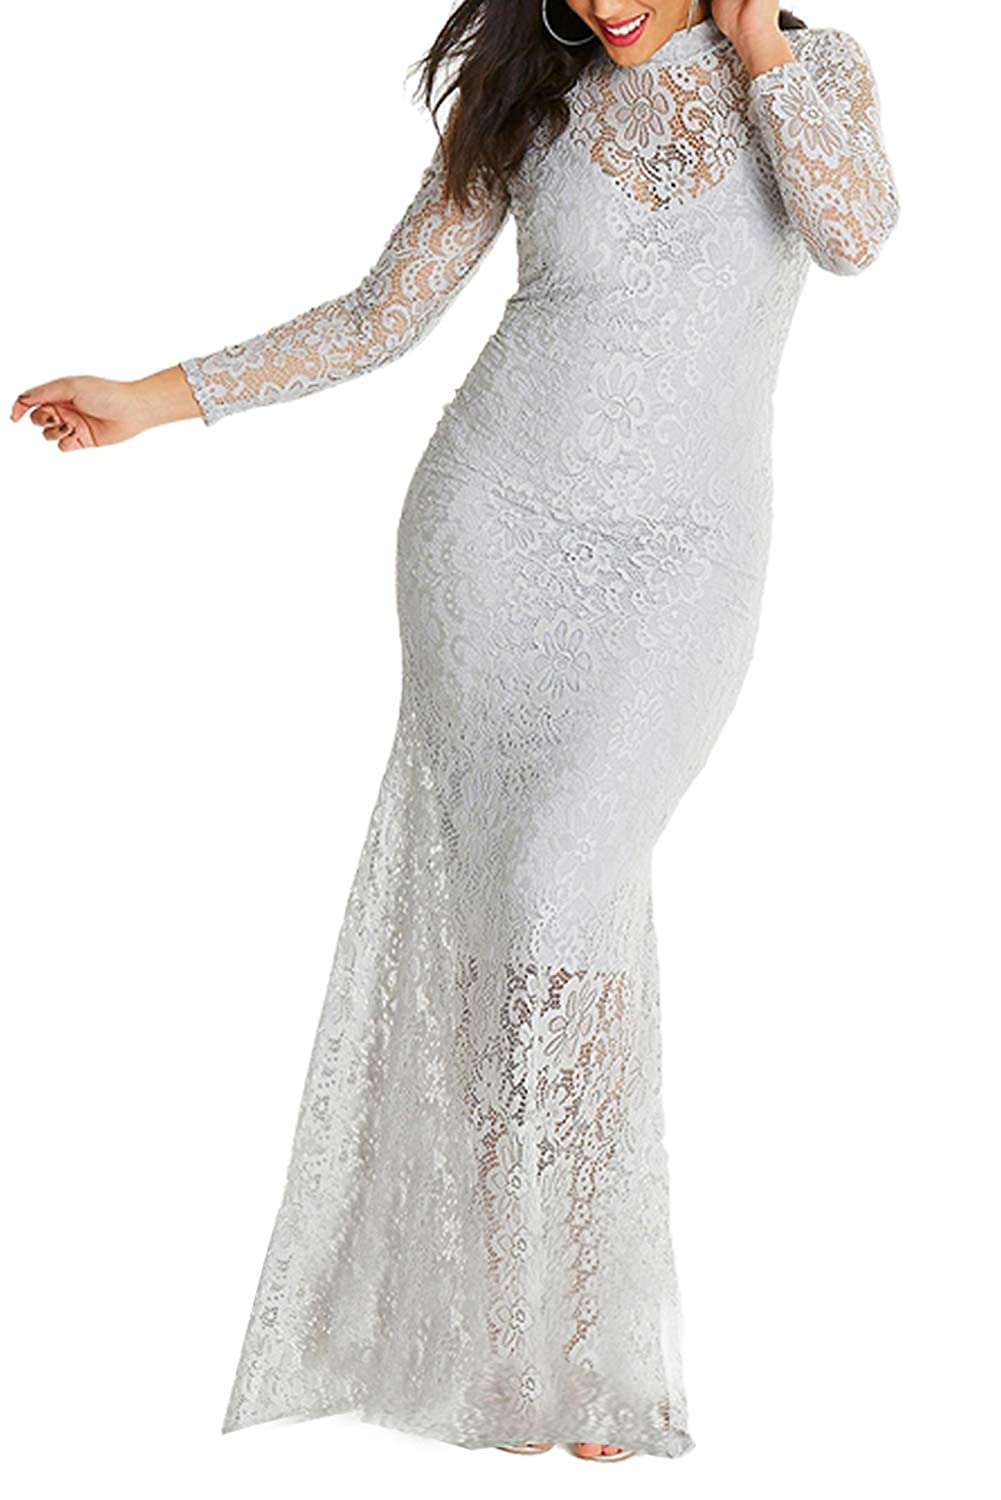 FUSENFENG Womens Lace Long Sleeve Plus Size Mermaid Wedding Evening ...